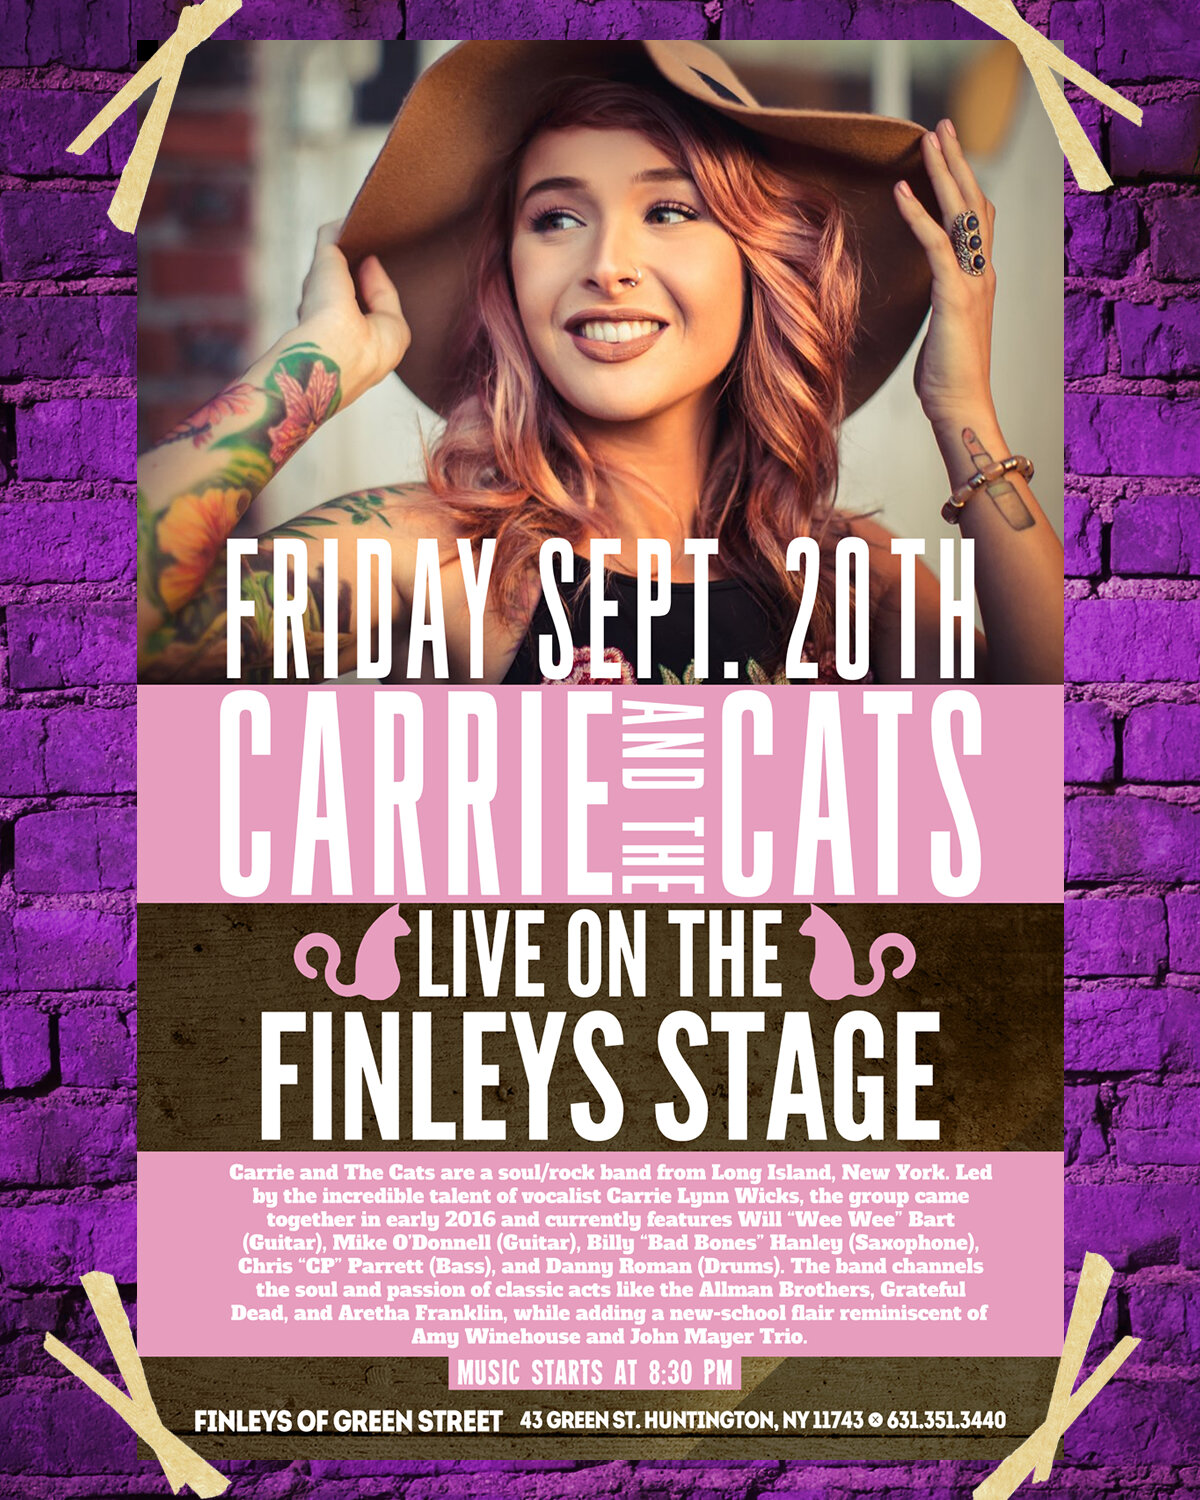 "Live on the Finley's stage this weekend, we've got Carrie and the Cats!  Carrie and the Cats are a soul/rock band from Long Island, NY. Led by the incredible talent of vocalist Carrie Lynn Wicks, the group came together in early 2016 and currently features Will ""Wee Wee"" Bart (Guitar), Mike O'Donnell (Guitar), Billy ""Bad Bones"" Hanley (Saxophone), Chris ""CP"" Parrett (Bass) and Danny Roman (Drums). The band channels the soul and passion of classic acts like the Allman Brothers, Grateful Dead and Aretha Franklin, while adding a new-school flair reminiscent of Amy Winehouse and John Mayer Trio.  Don't miss them when they hit the stage - music kicks off at 8:30pm."